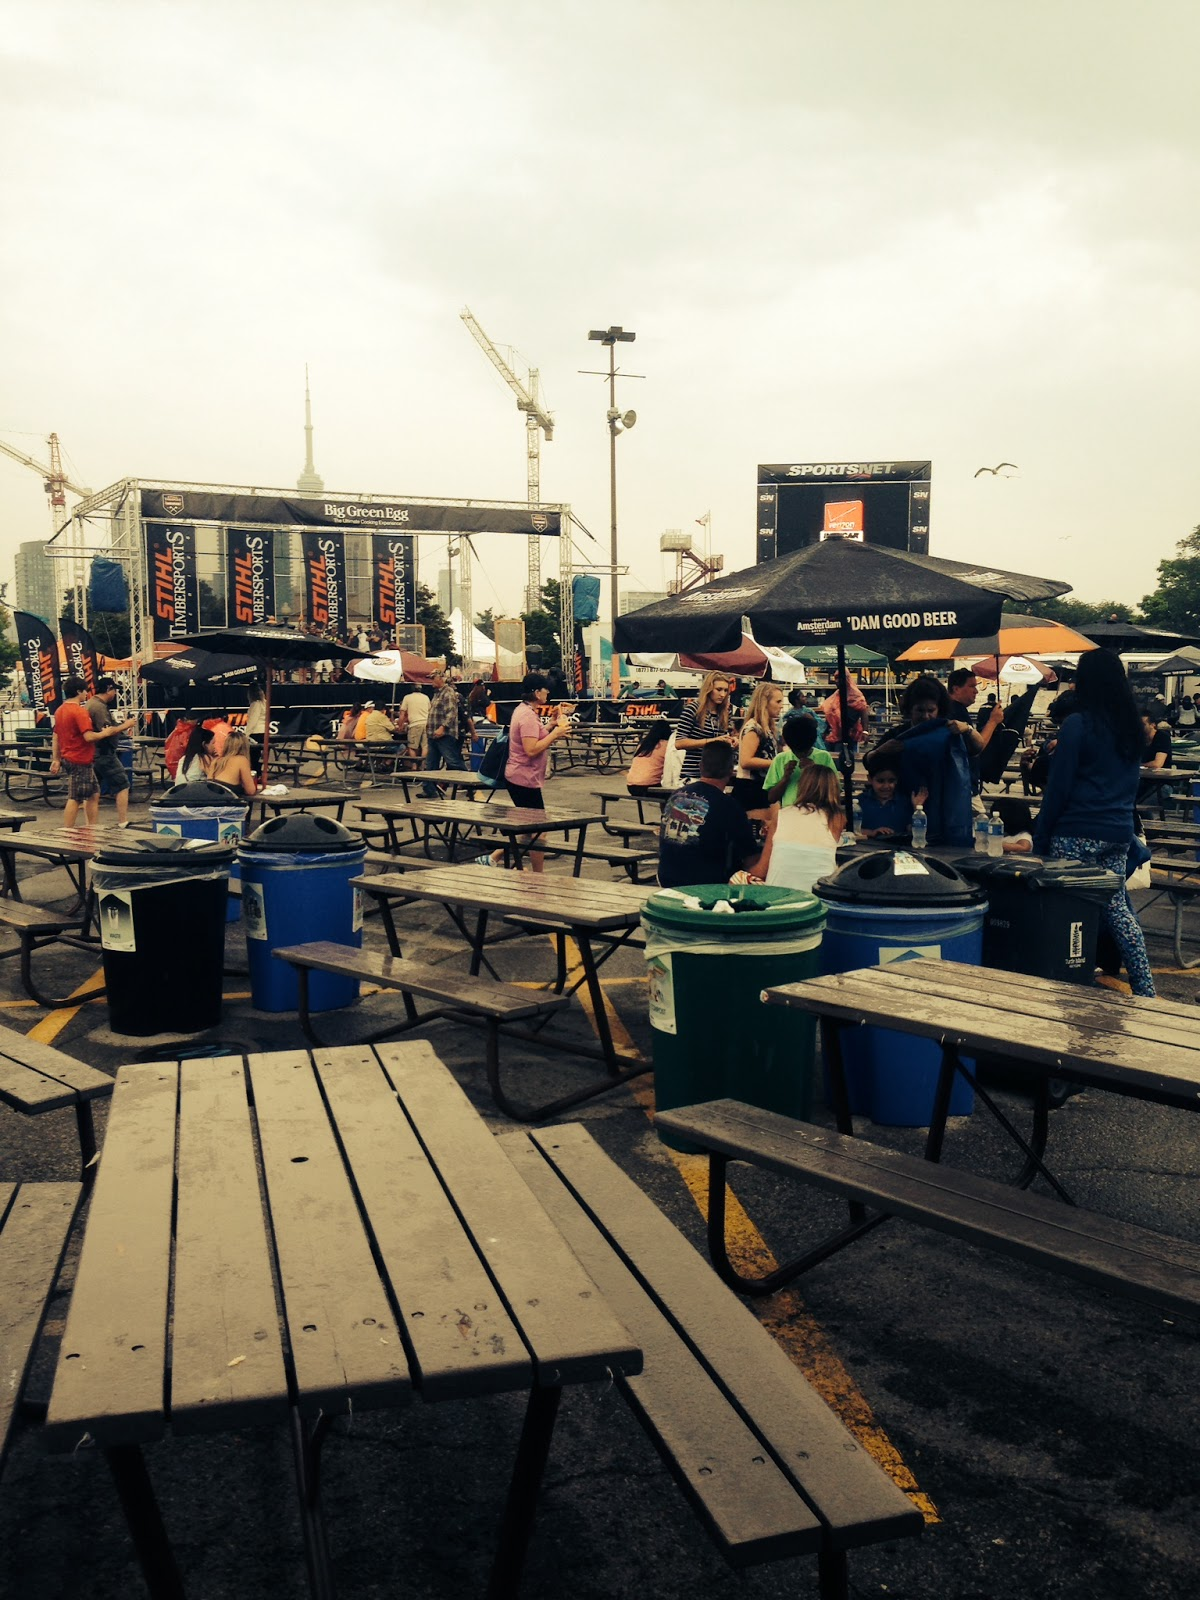 The seating area for Tastefest